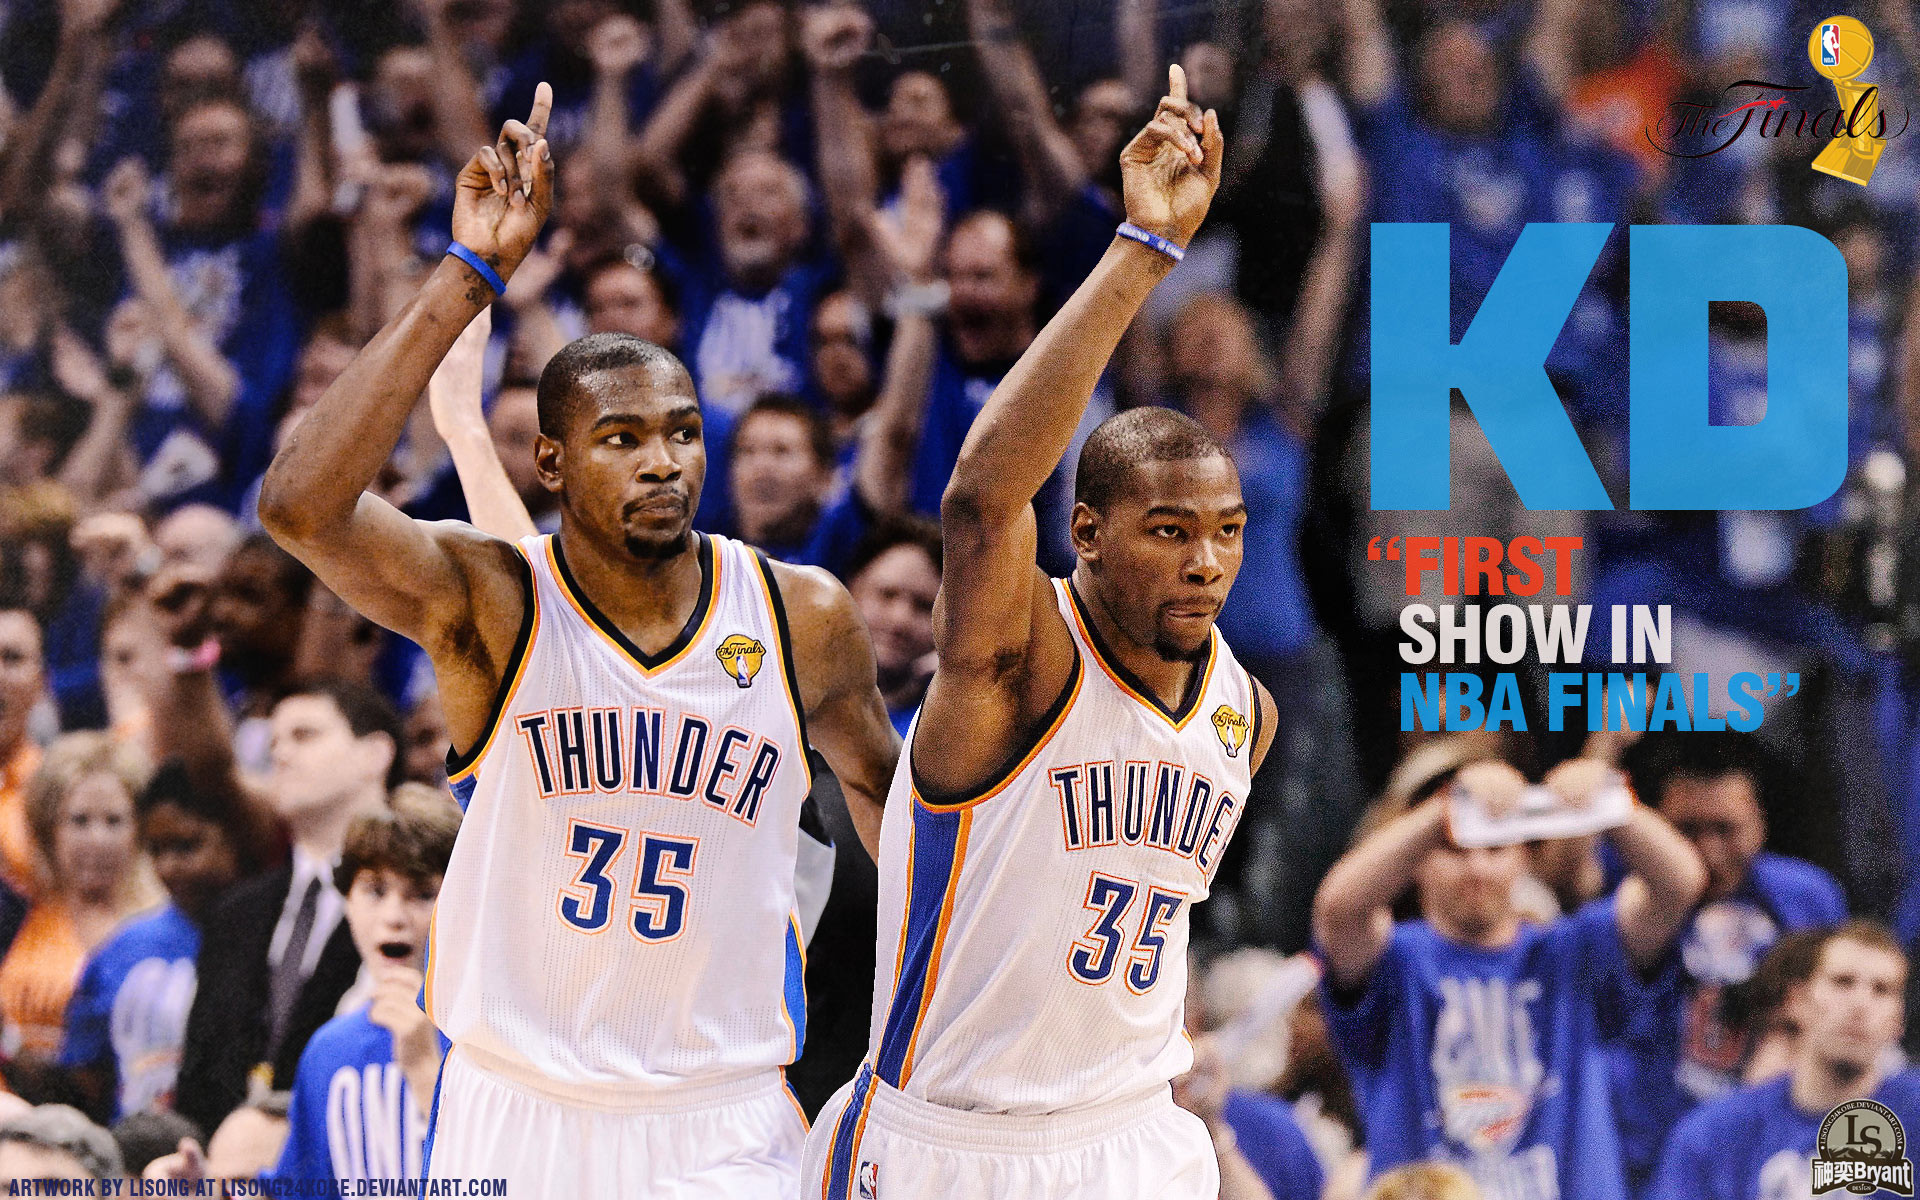 1920x1200 Kevin Durant And Russell Westbrook HD Wallpapers 4 | Kevin Durant And Russell  Westbrook HD Wallpapers | Pinterest | Russell westbrook, Kevin durant and  Nba ...